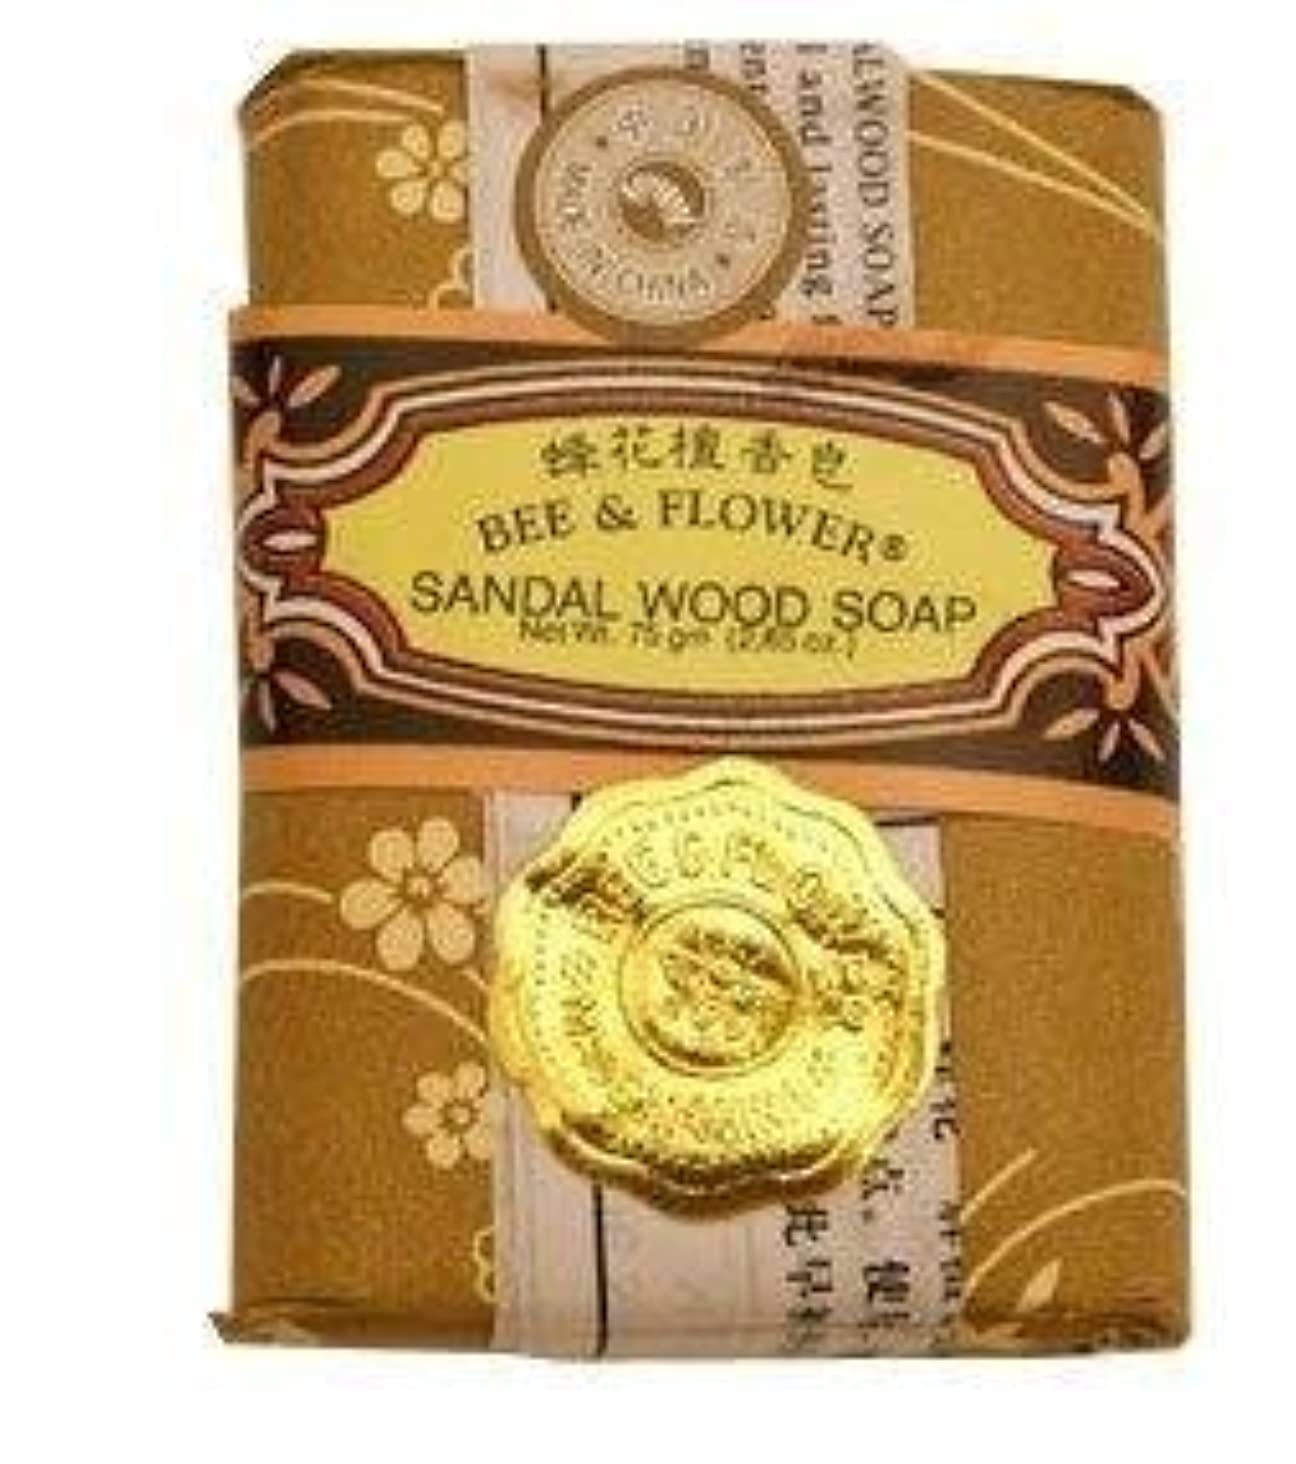 歩き回るかける予測するBee And Flower Sandal Wood Bar Soap 2.65 Ounce - 12 per case. [並行輸入品]